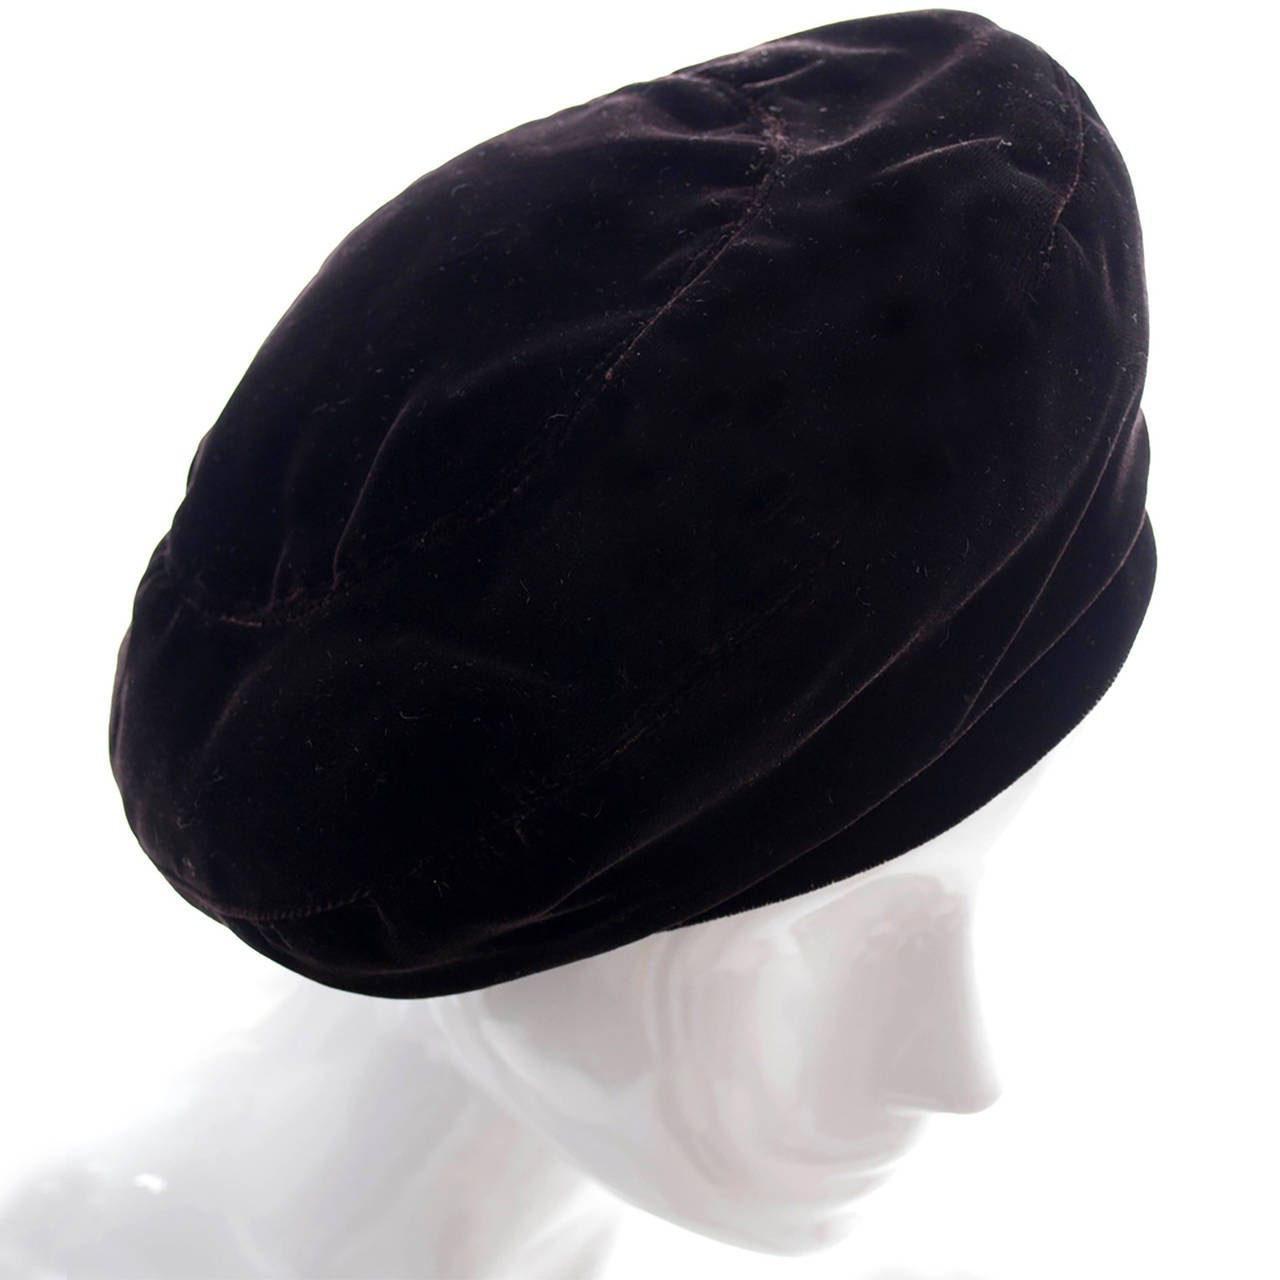 This vintage YSL hat is in a rich, luxurious chocolate brown velvet.  A beautiful 1970's beret from an estate of outstanding vintage clothing and accessories. The hat measures 21 and 1/2 inches in circumference and has the Yves Saint Laurent Rive